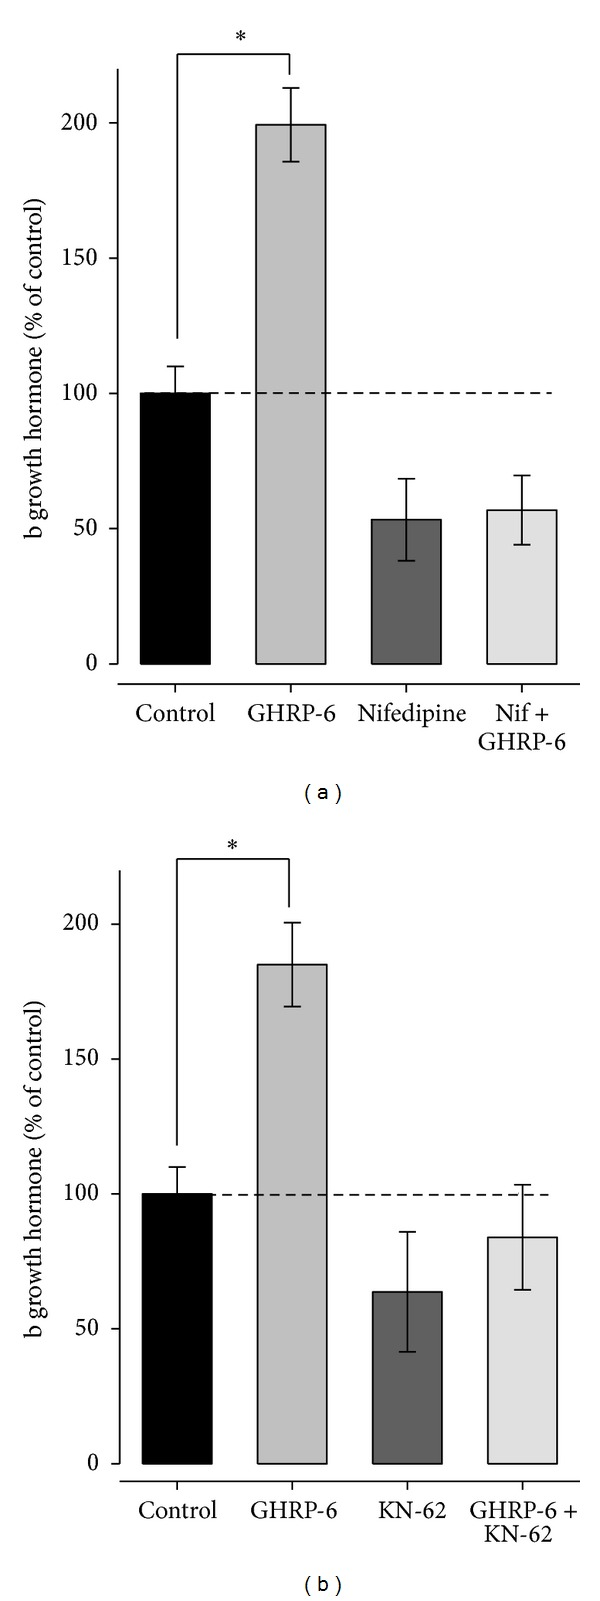 High voltage activation calcium channels' L-type regulation and pathway signaling Ca 2+ /CaM-K II affect GH release in bovine somatotropes. (a) Bar graph illustrating the regulation of hormone release by GHRP-6 (100 nM) applied alone or in the presence of <t>nifedipine</t> (0.5 μ M) a blocker of HVACC L-type. (b) Average amount of GH released in the absences (control) and after treatment with the signaling pathway Ca 2+ /CaM-K II inhibitor KN-62 (10 μ M) alone or in combination with GHRP-6 (100 nM). Each value represents the mean ± SE of determinations performed in triplicate from three independent experiments. The asterisks denote significant differences ( P